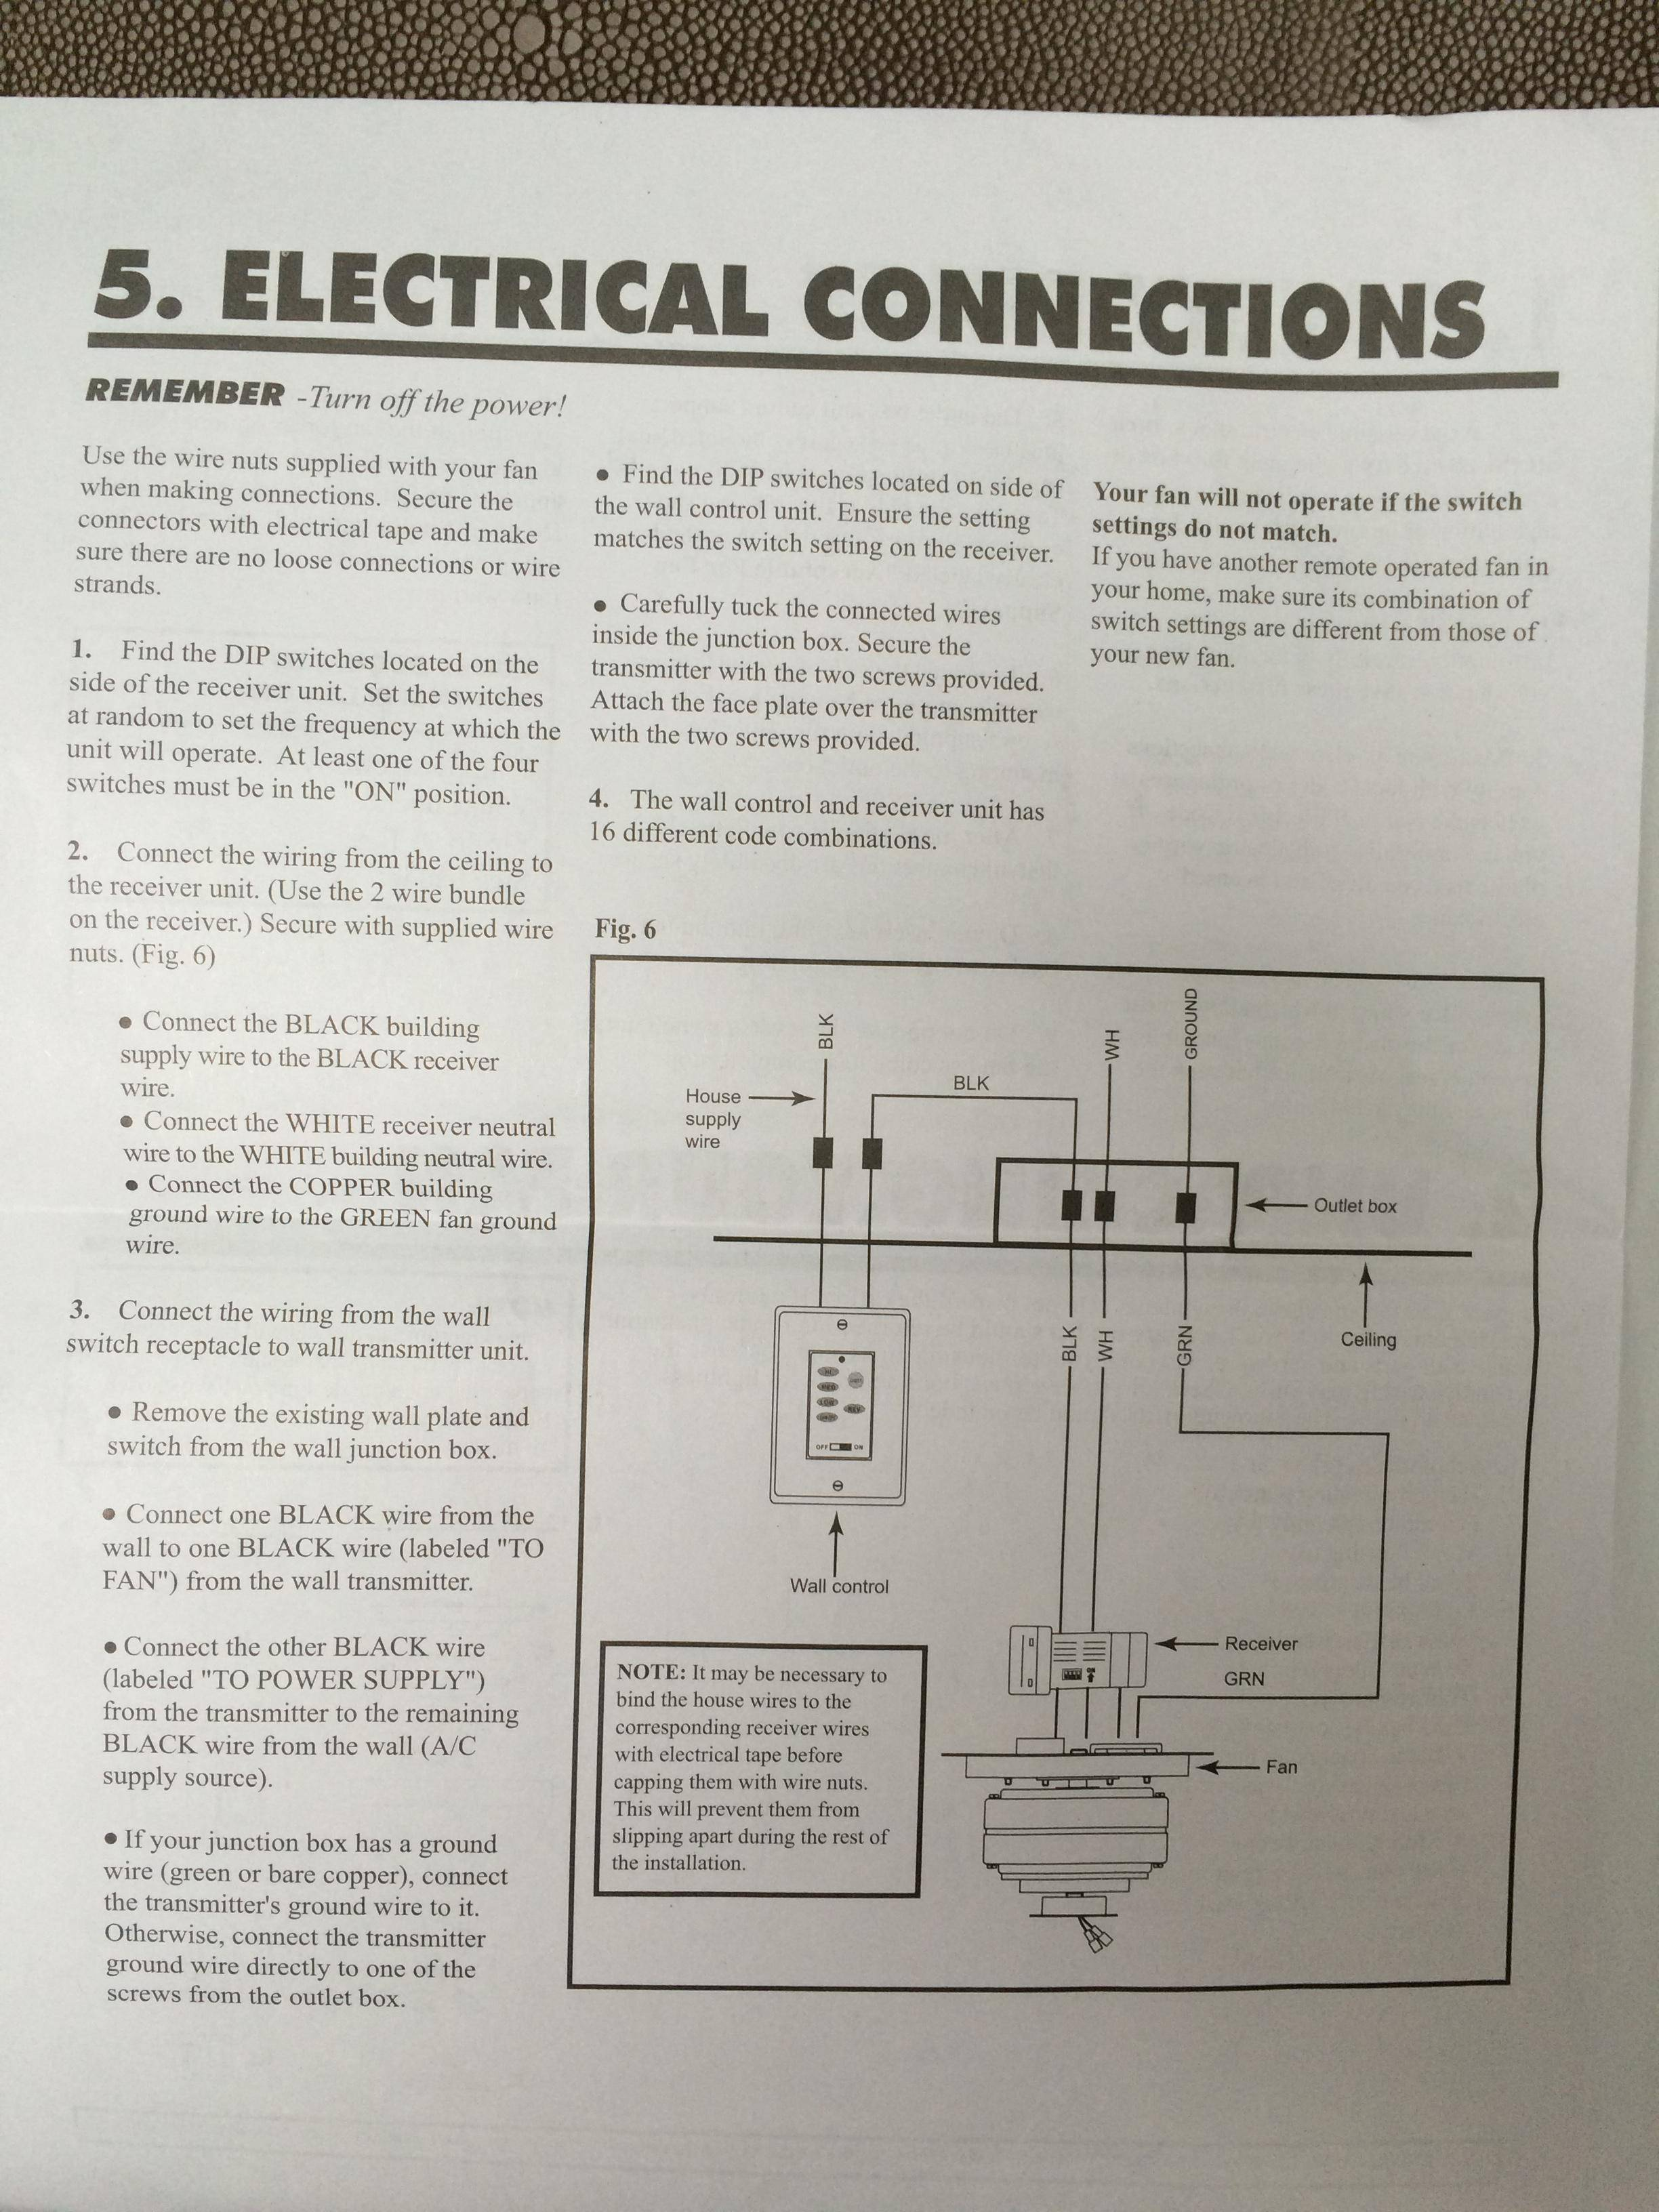 how to wire a ceiling fan with two switches diagrams 2004 dodge ram wiring diagram electrical and light installation can 39t get